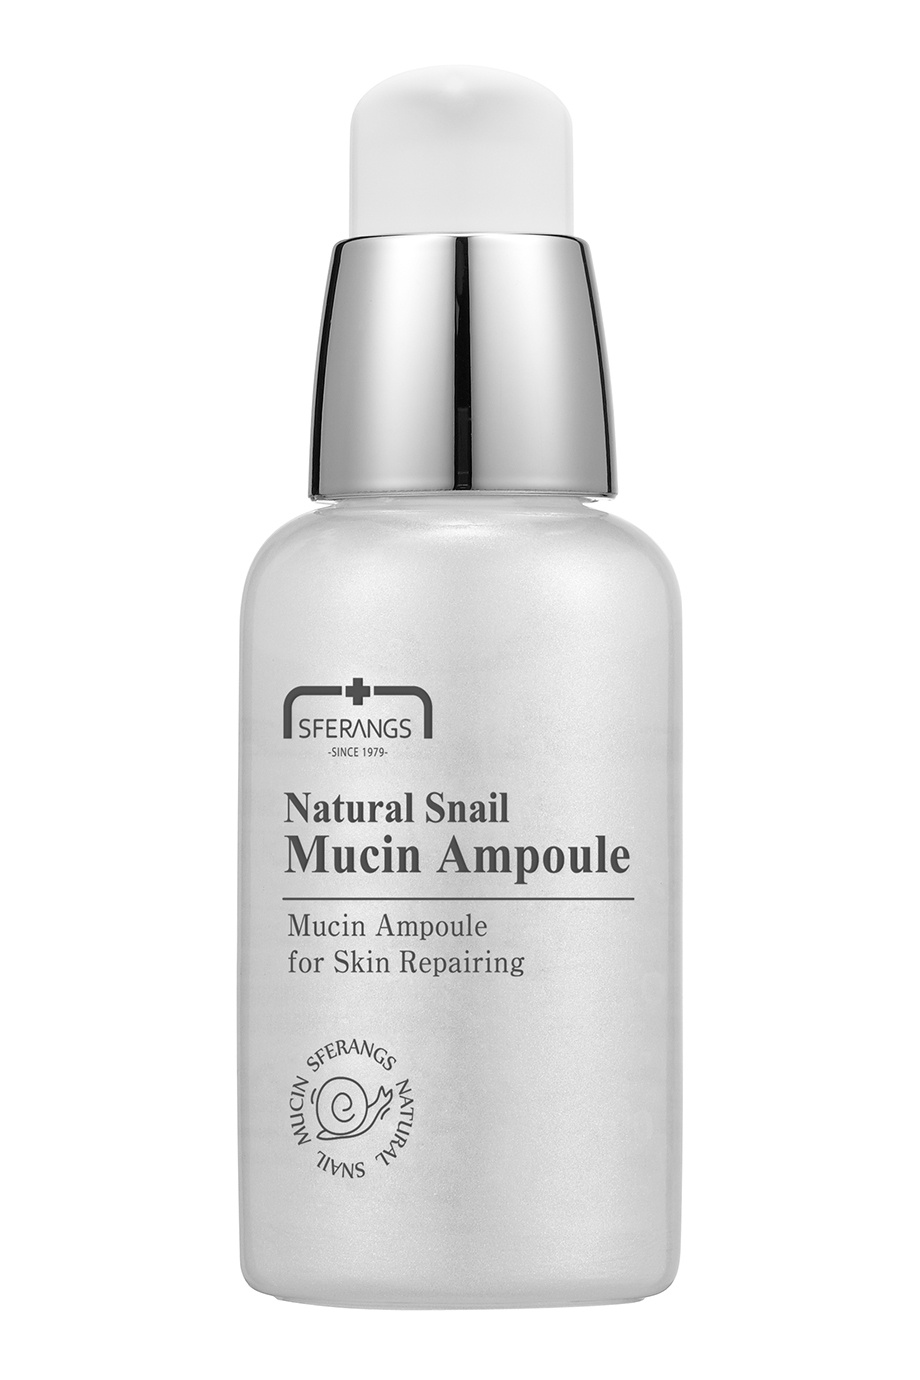 Сыворотка Natural Snail Mucin Ampoule 30ml Sferangs (фото)